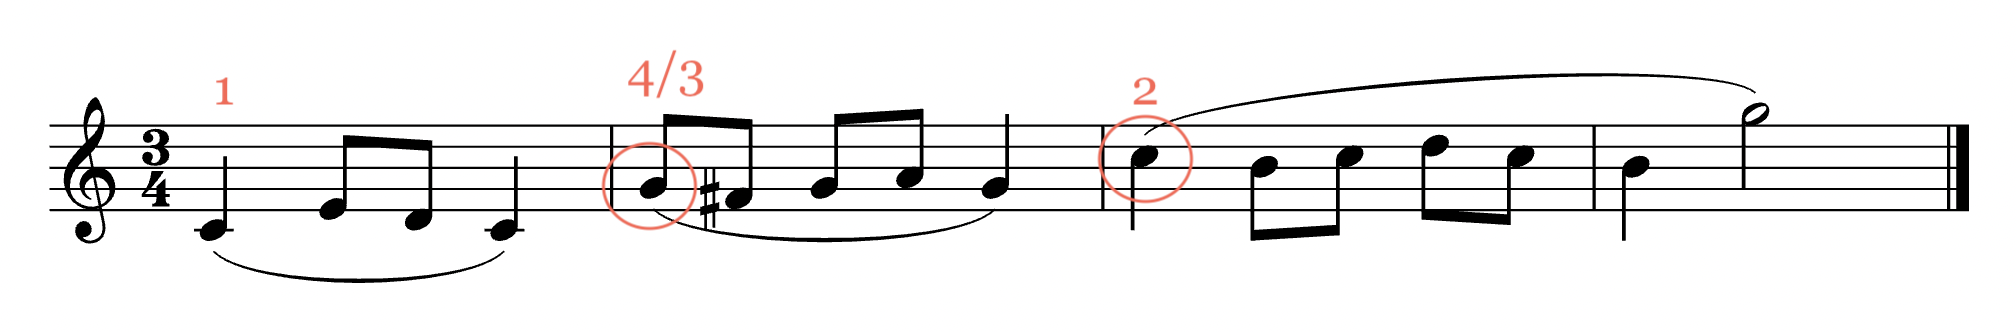 changing hand position at the end of phrases